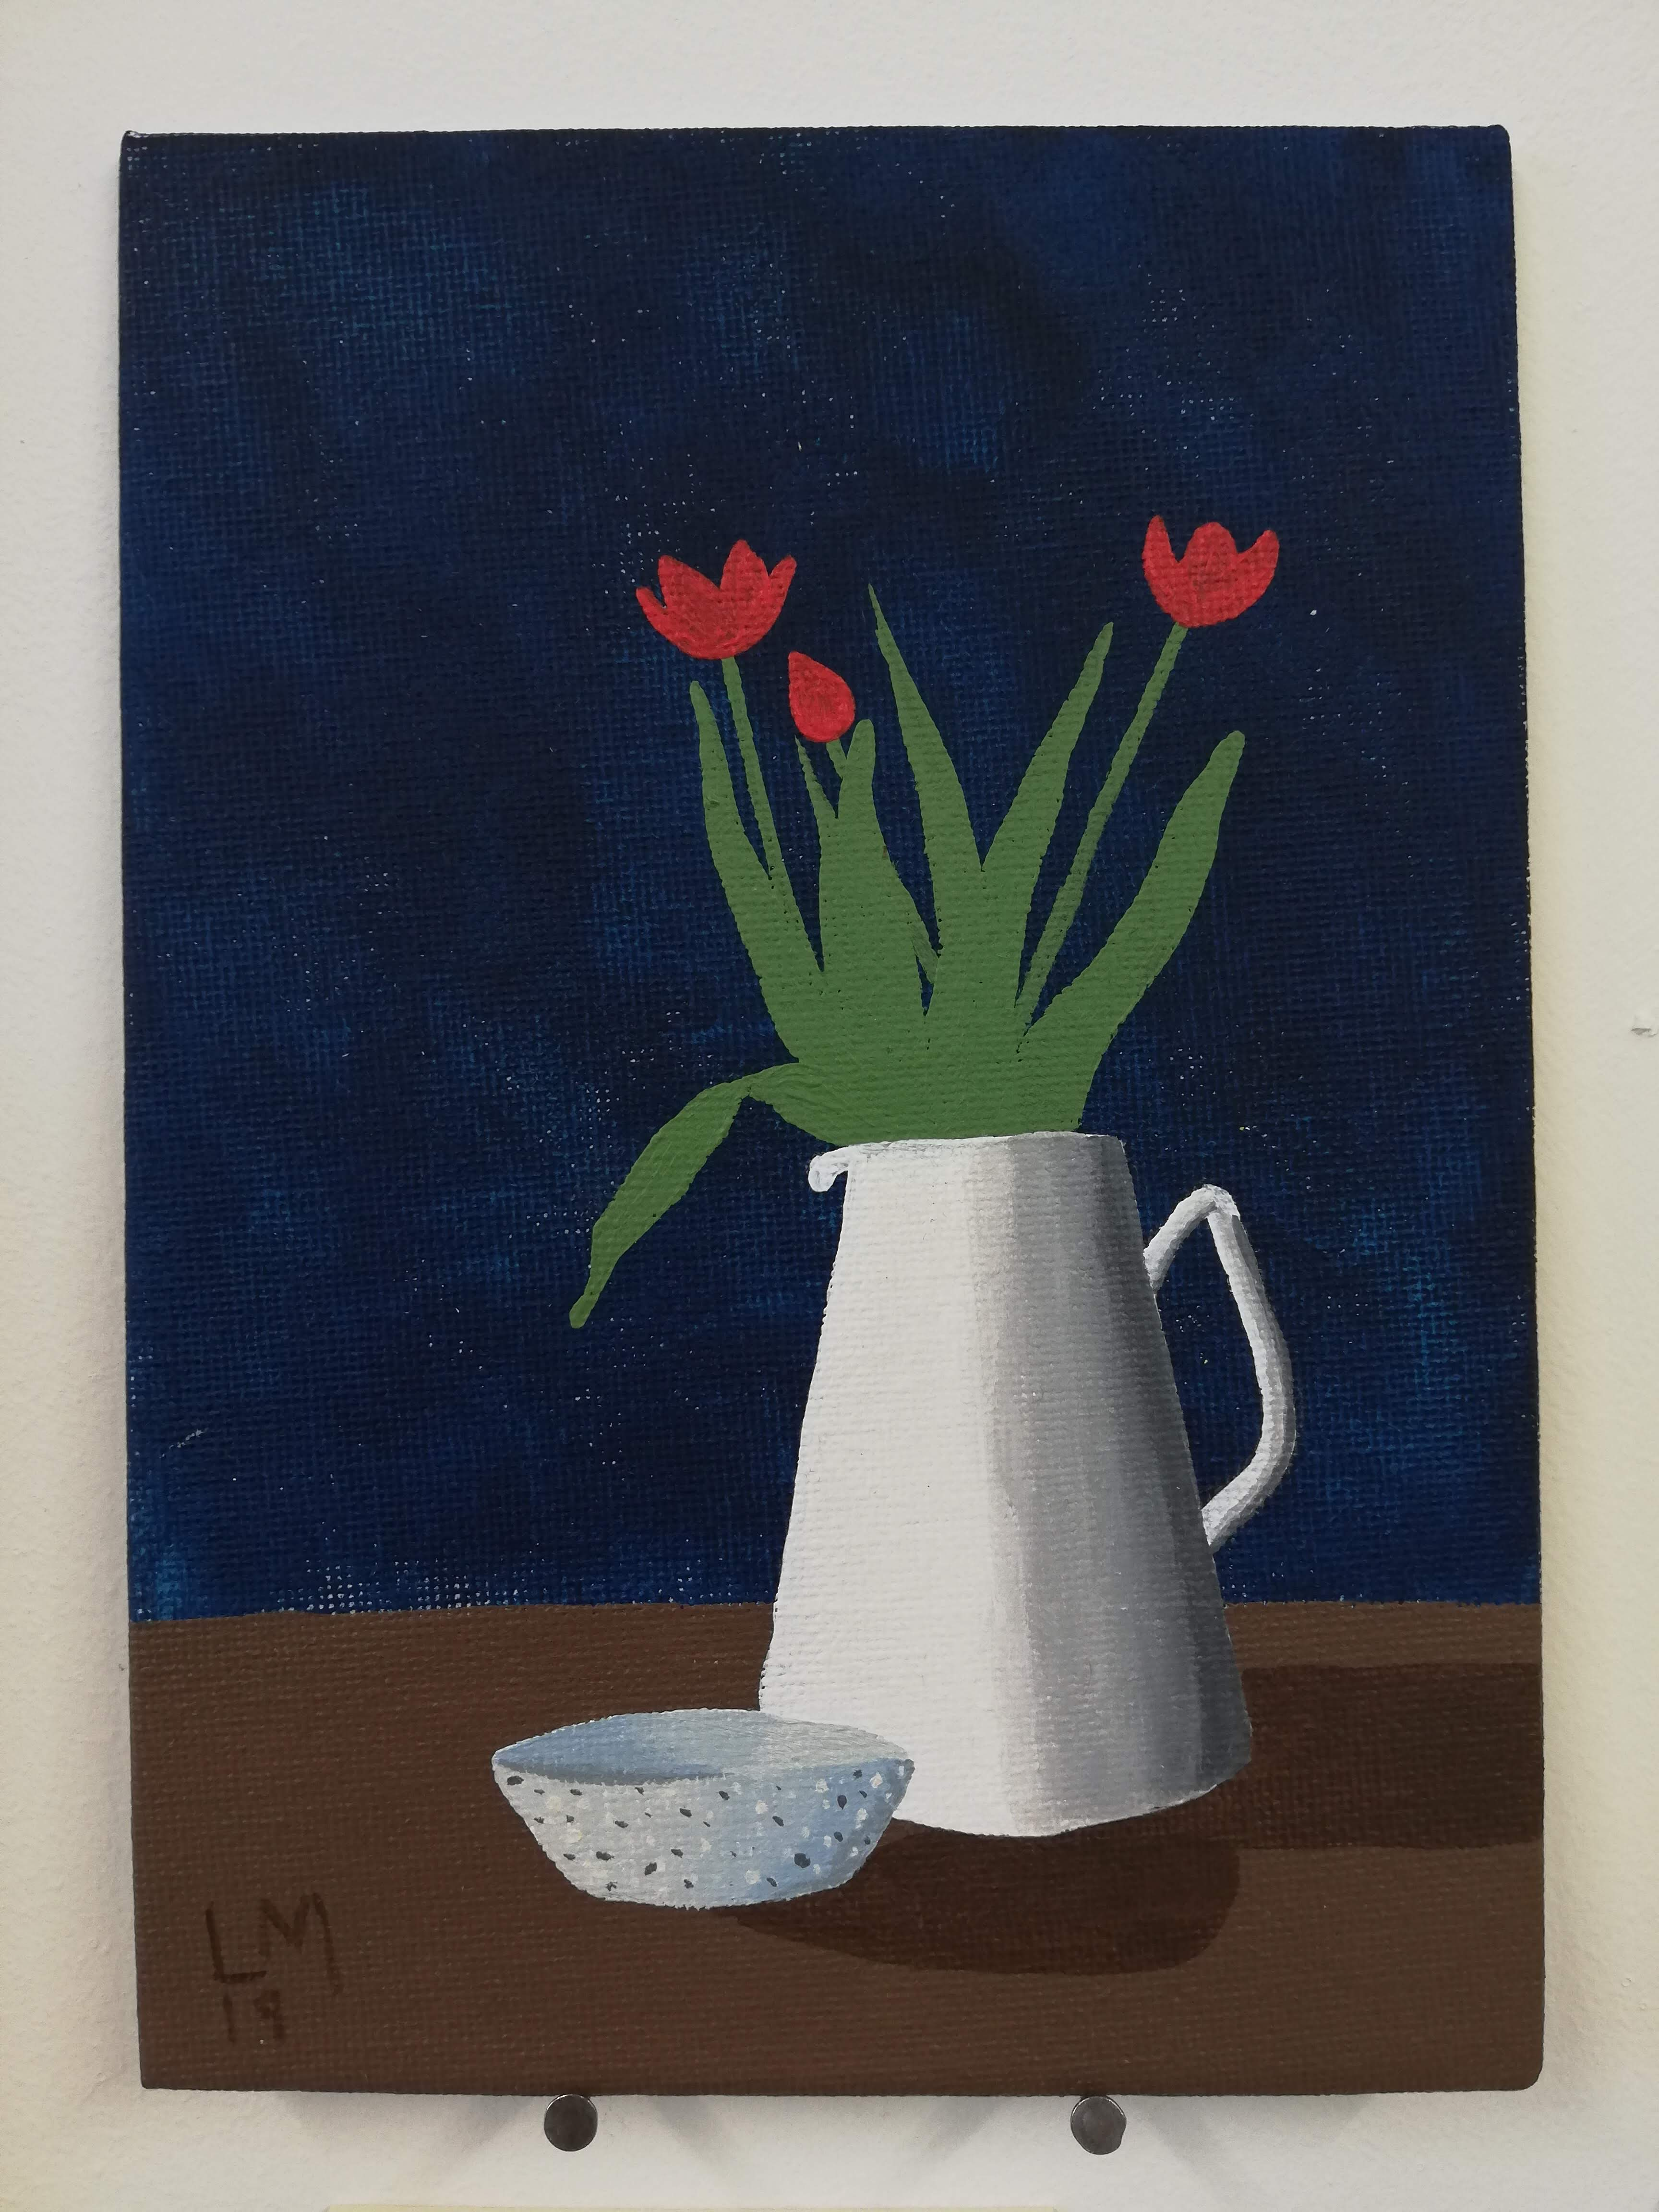 'Tulips in a Jug with a Bowl'